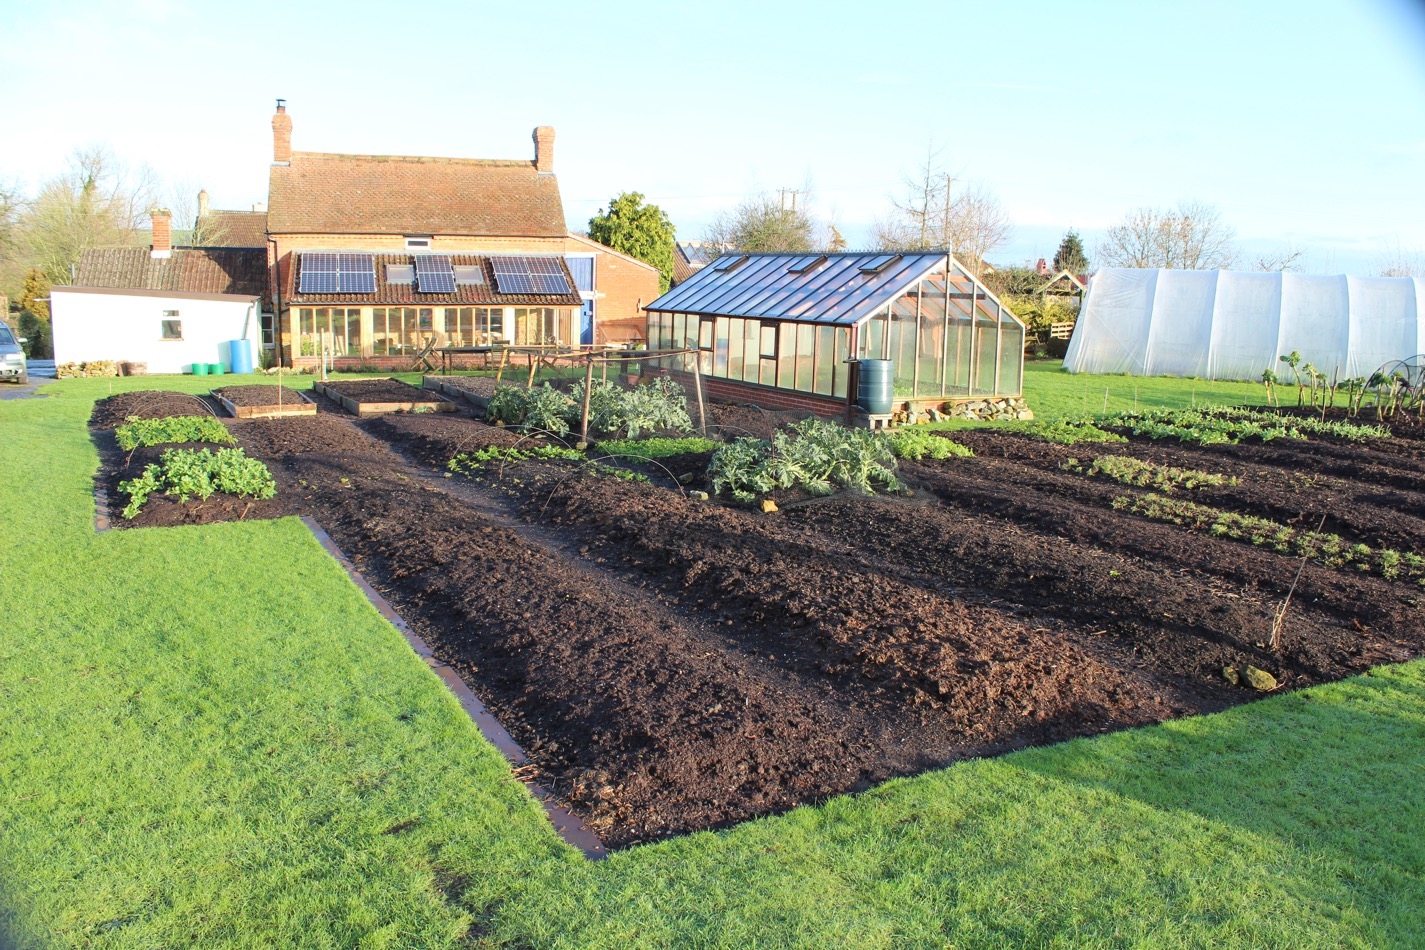 Homeacres 12/02.2016, very few weeds have grown on these beds through the exceptionally mild winter. Undisturbed soil sees less weed seeds germinating, compost mulch helps.